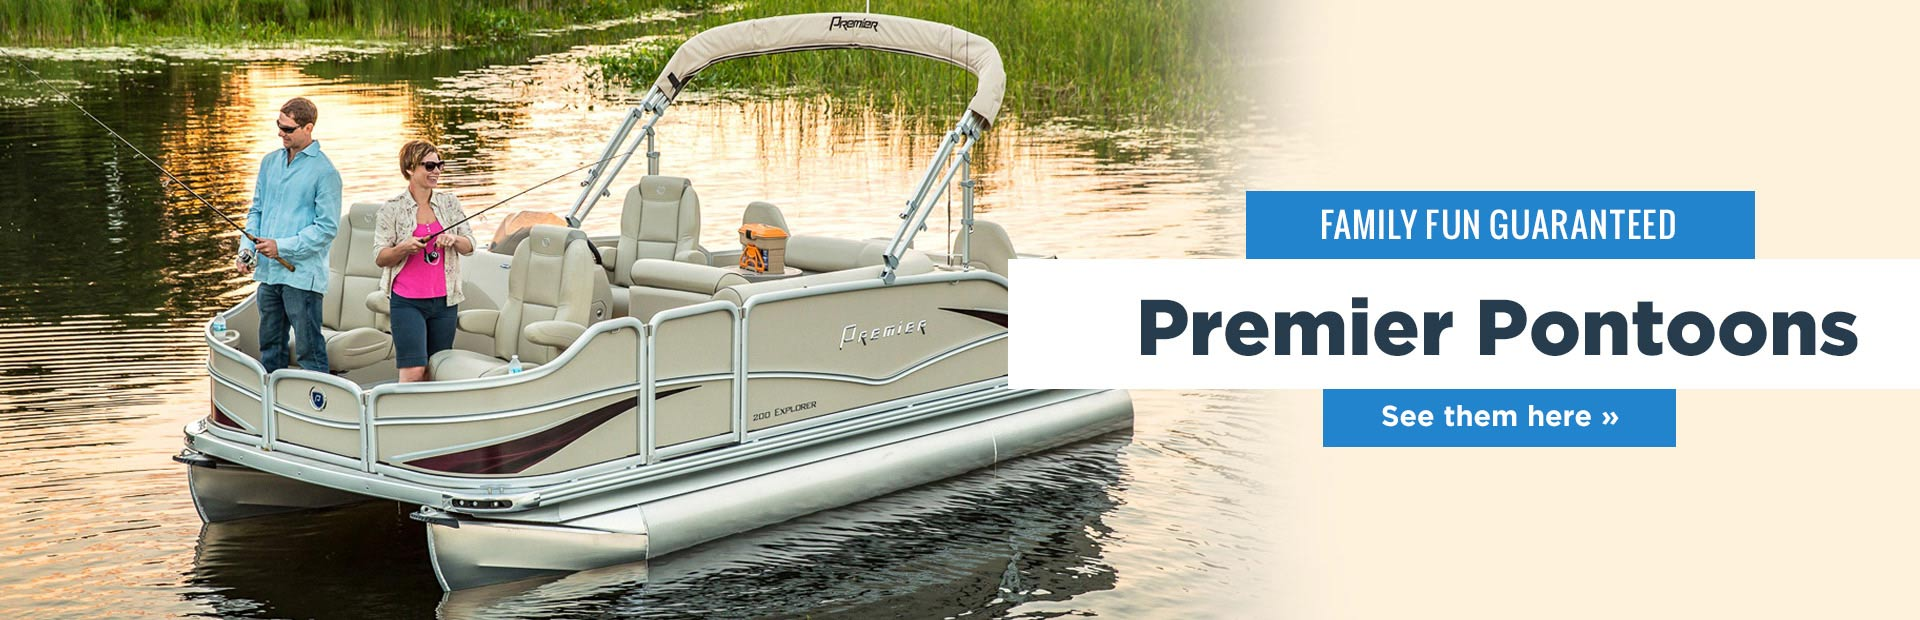 Family fun is guaranteed with Premier pontoons! Click here to see our selection.